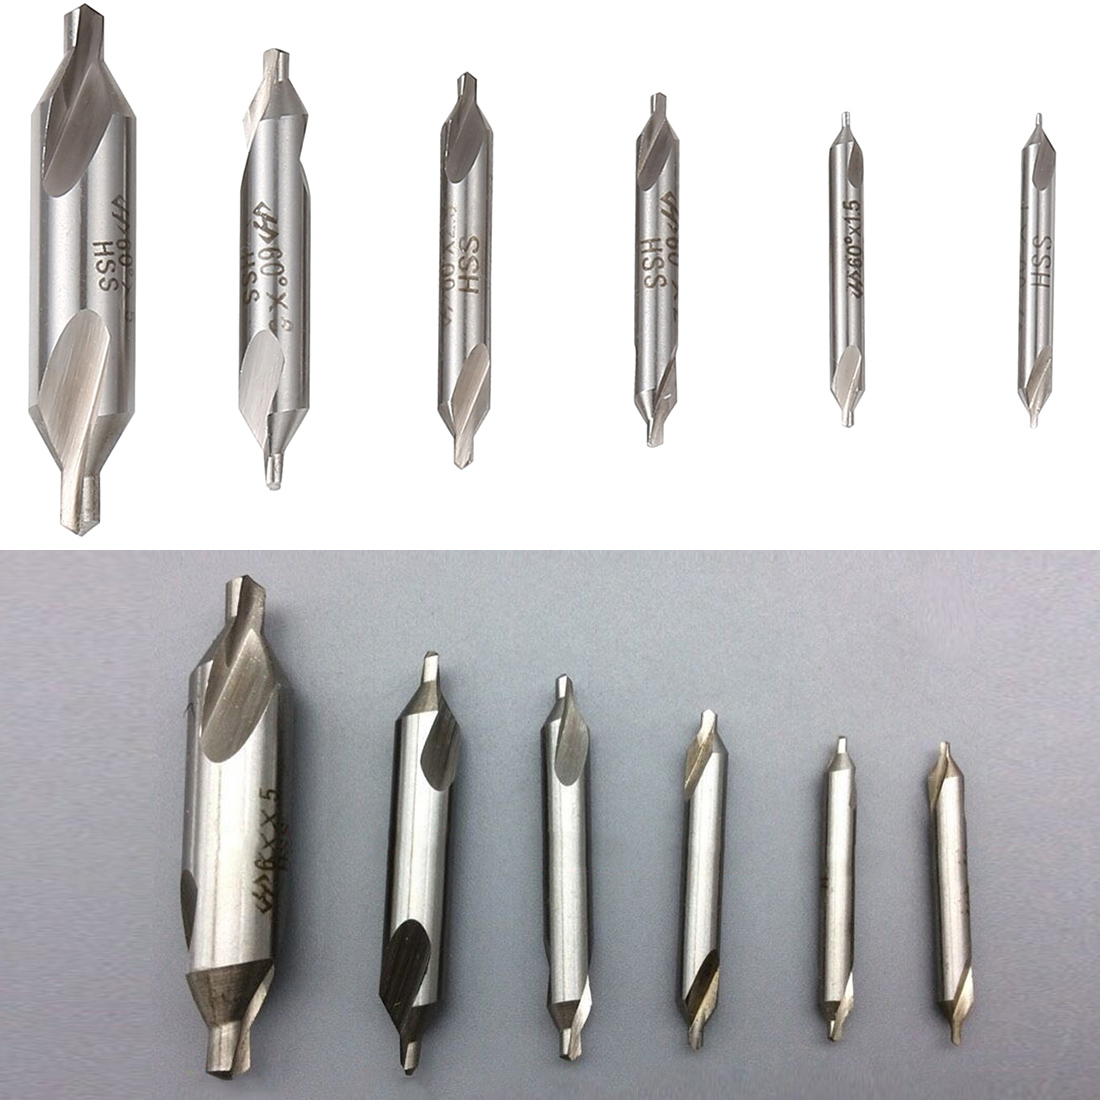 60 Degree Angle HSS High Speed Steel Center Drill Bits Set 6pc Precision Combined Countersinks Kit 5/3/2.5/2/1.5/1mm For Lathe